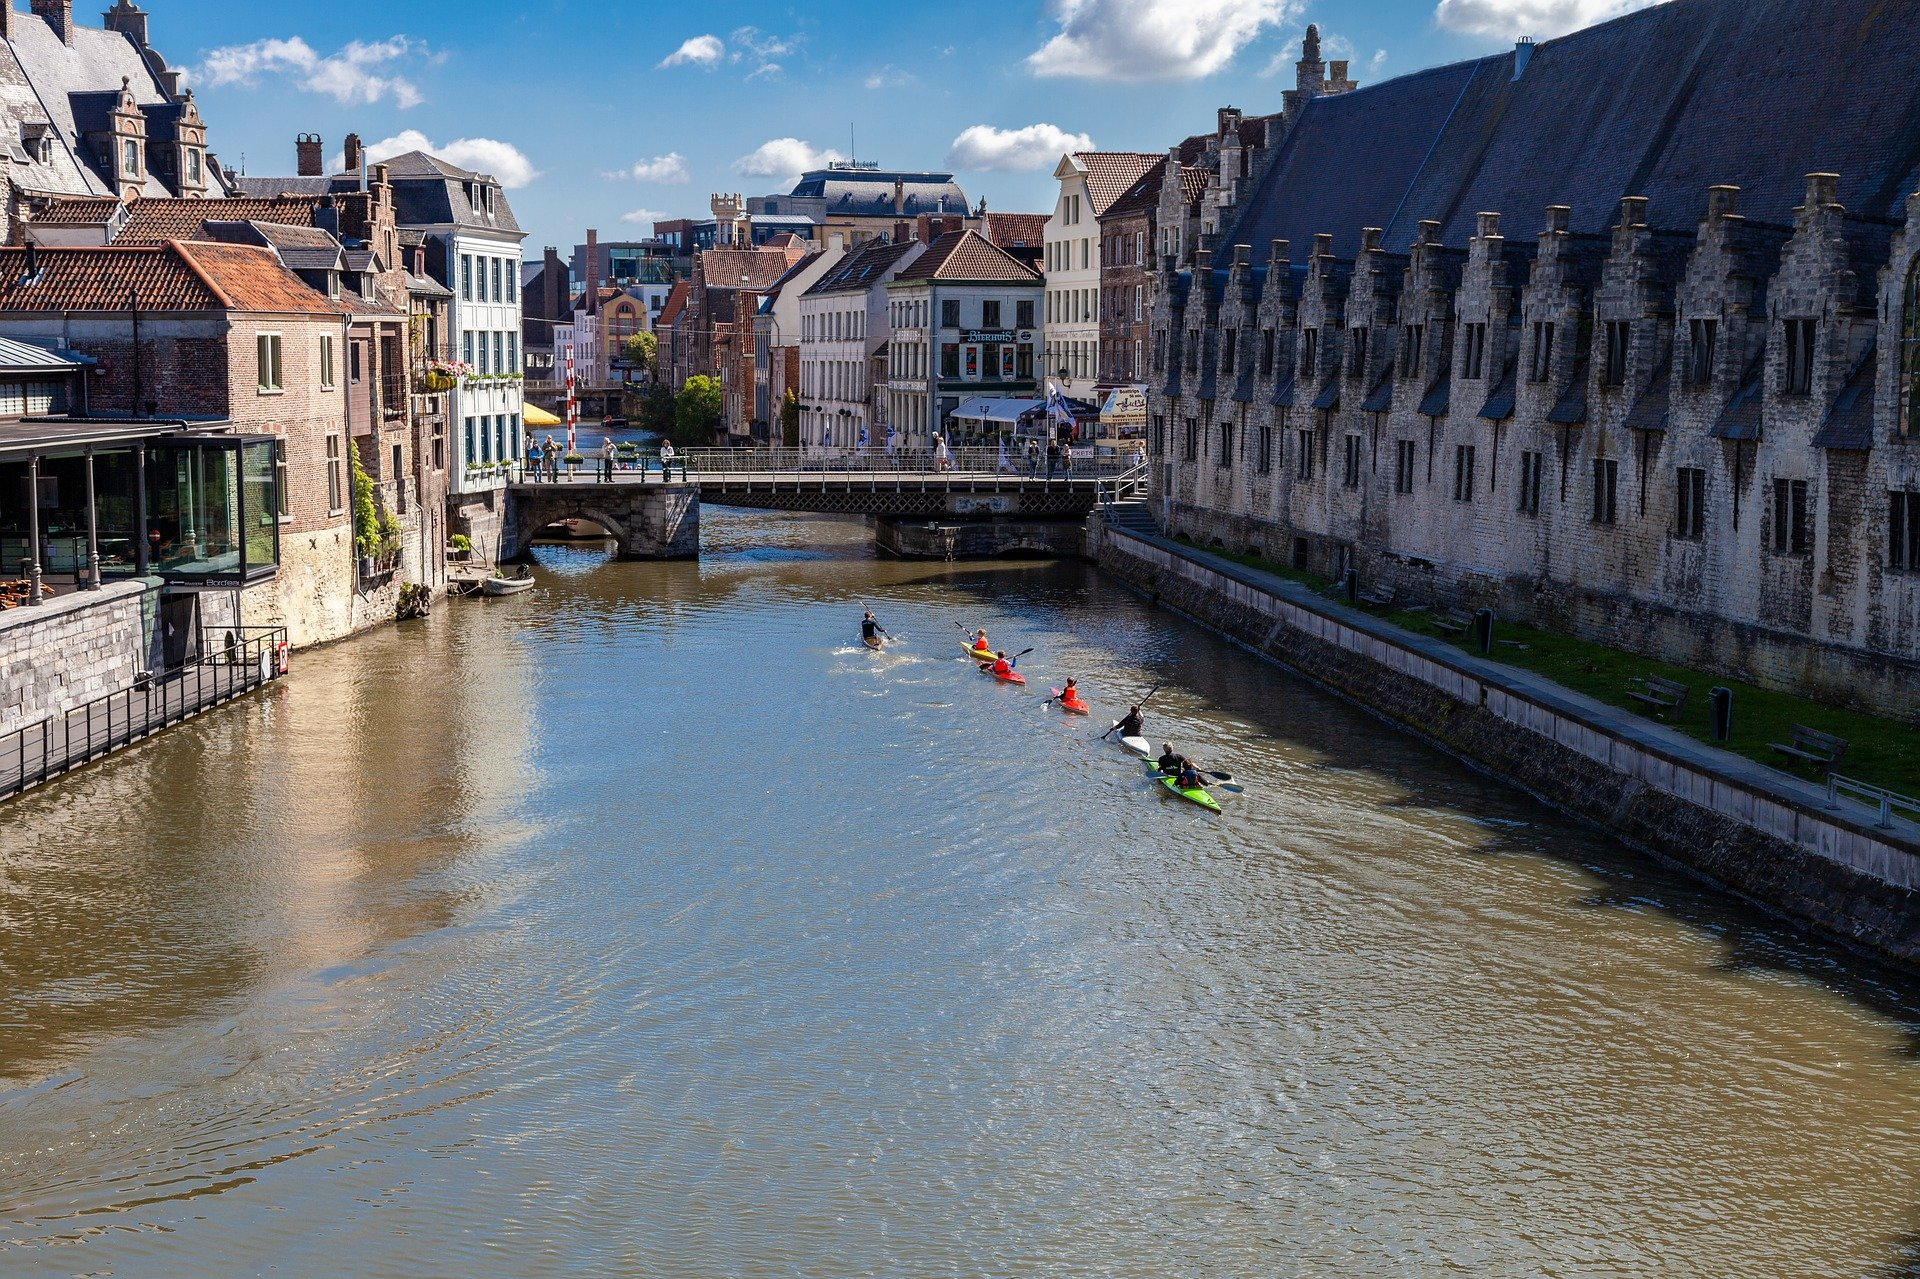 People are kayaking in the waterways of Belgium.